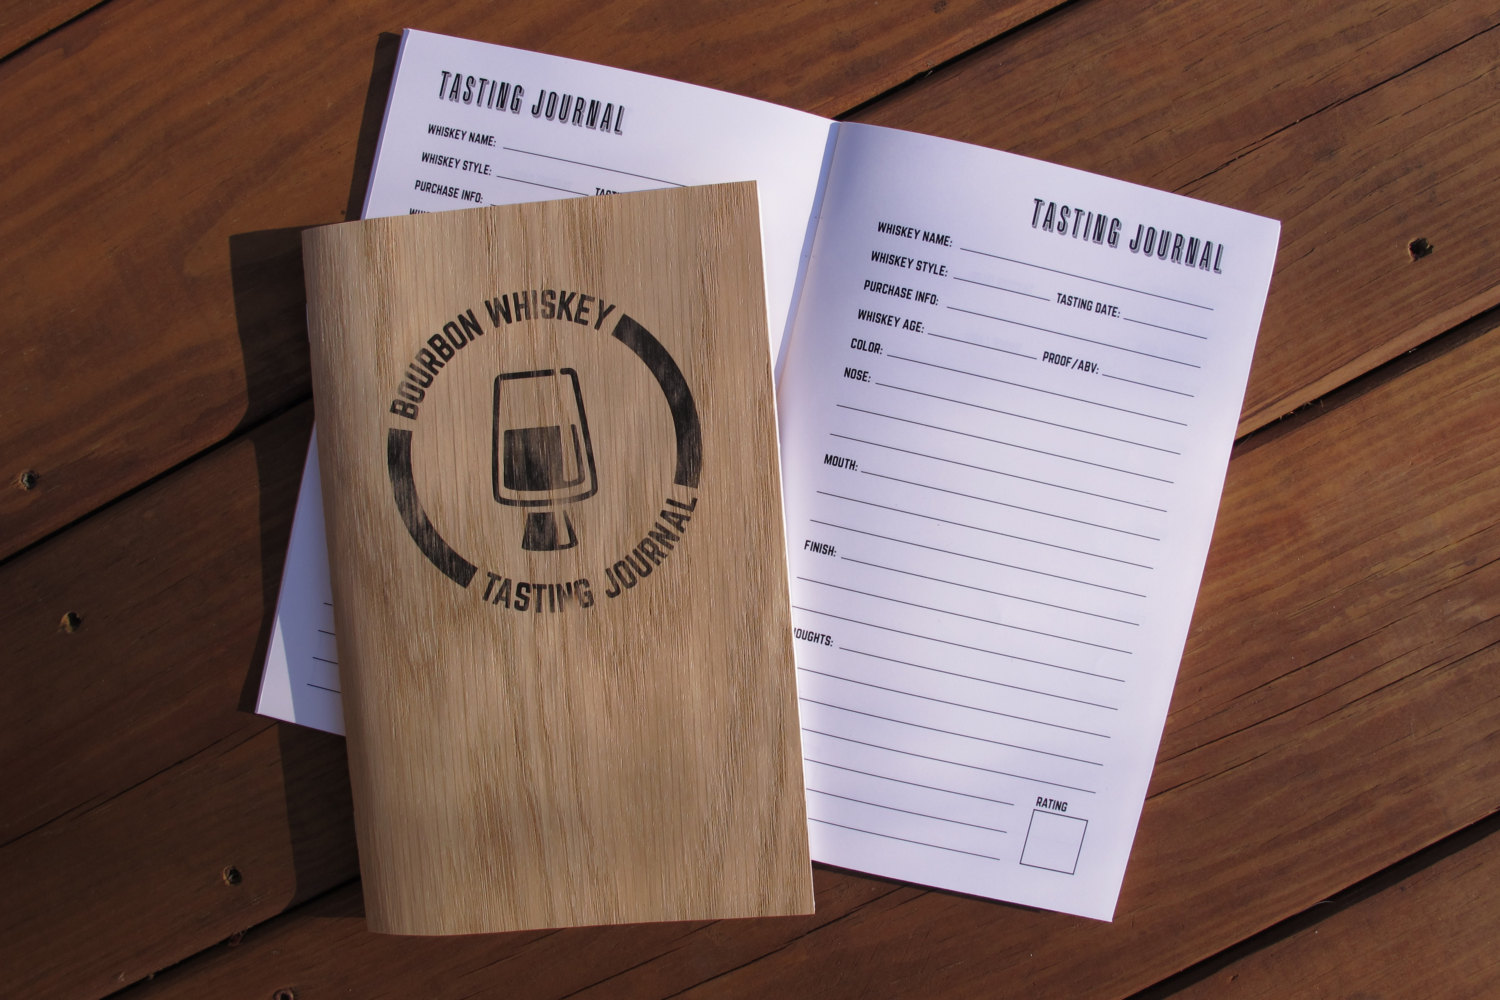 Bourbon Tasting Journal